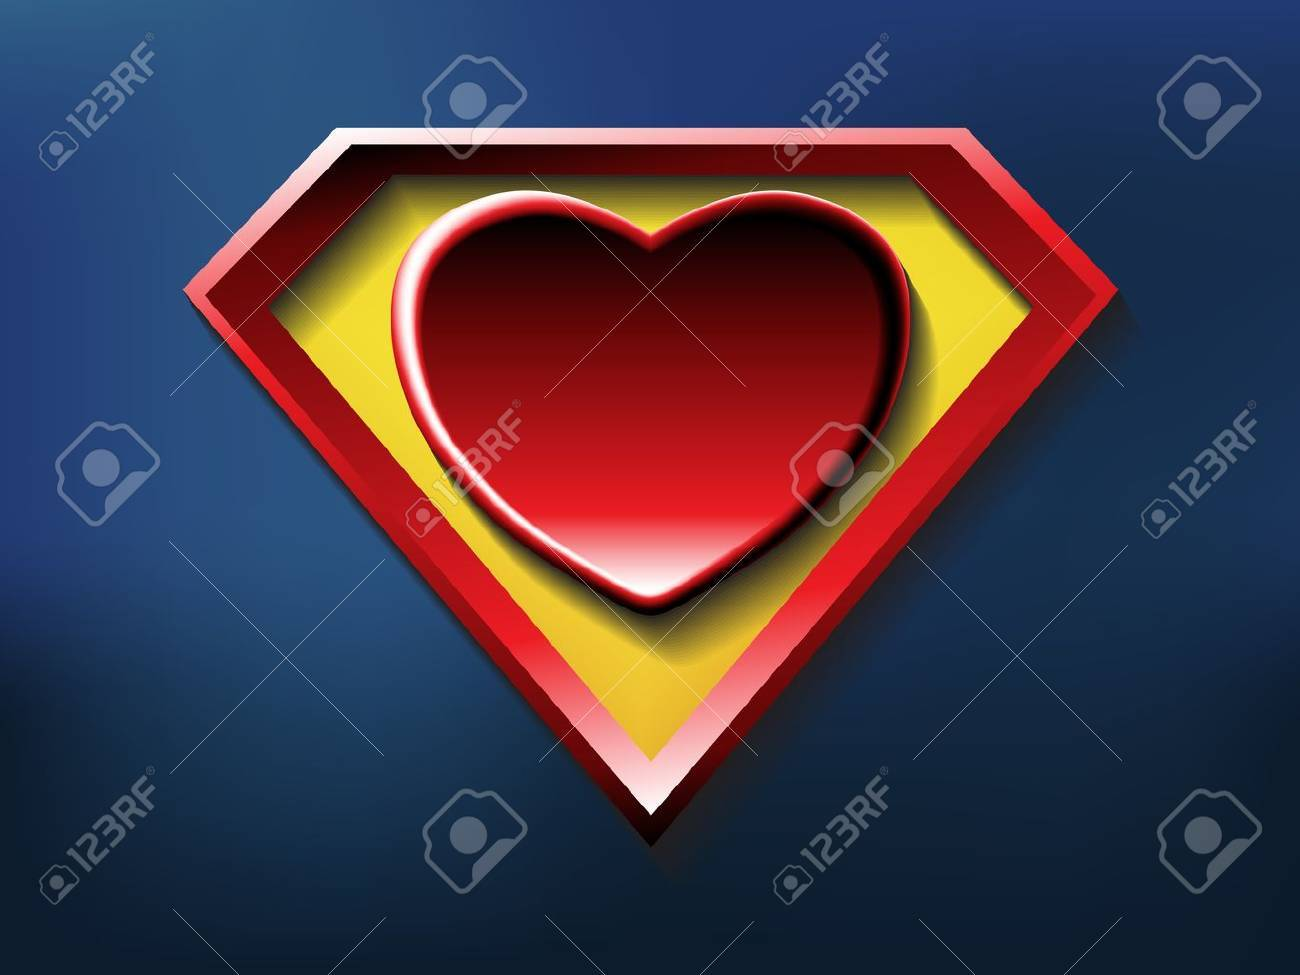 a big red heart shaped like a superhero shield, symbol for strong love Stock Vector - 20070741